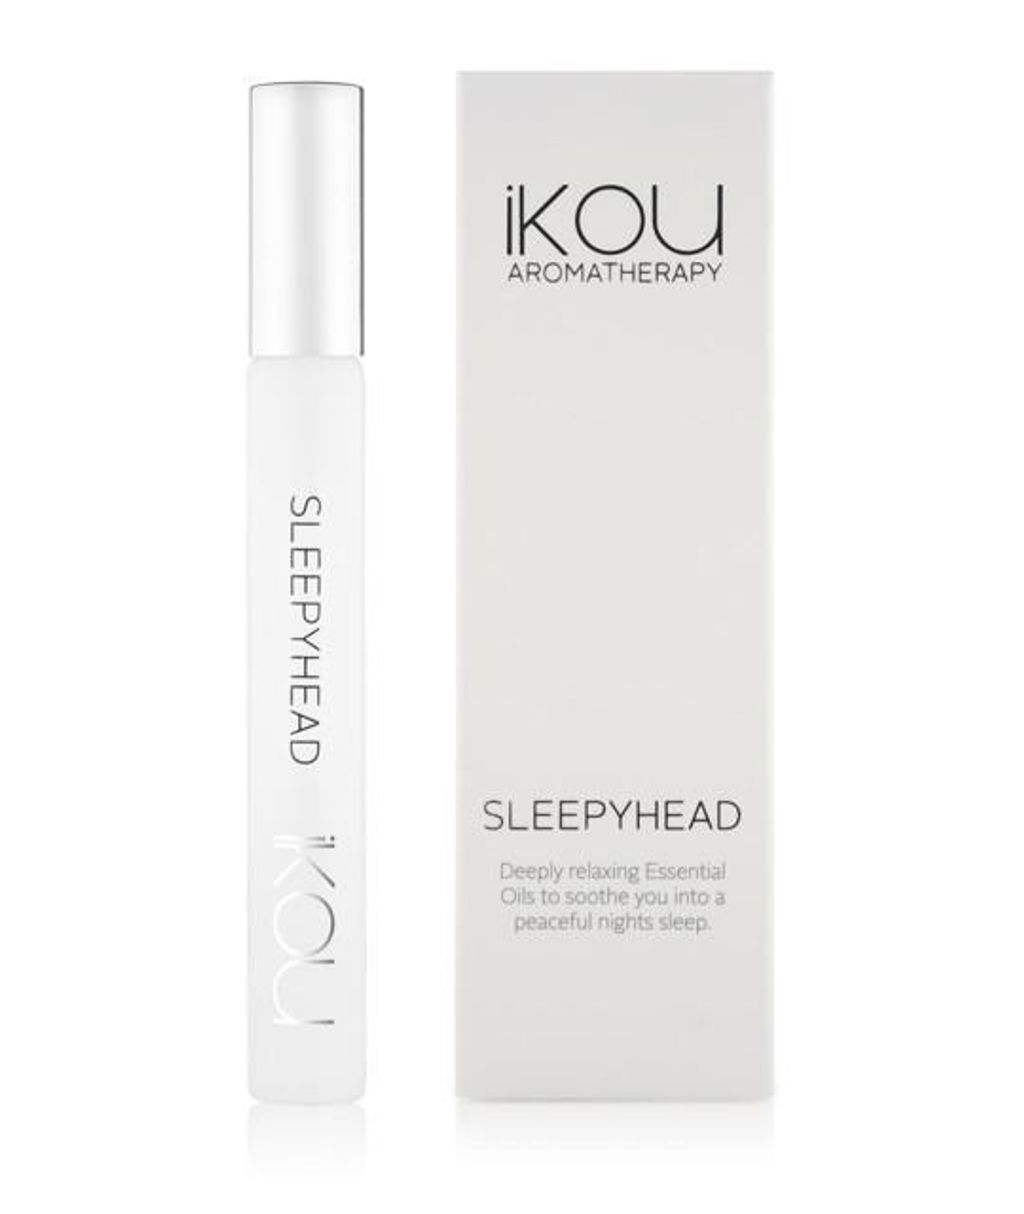 iKOU_PURE_RESULTS_LORES__14_1800x1800